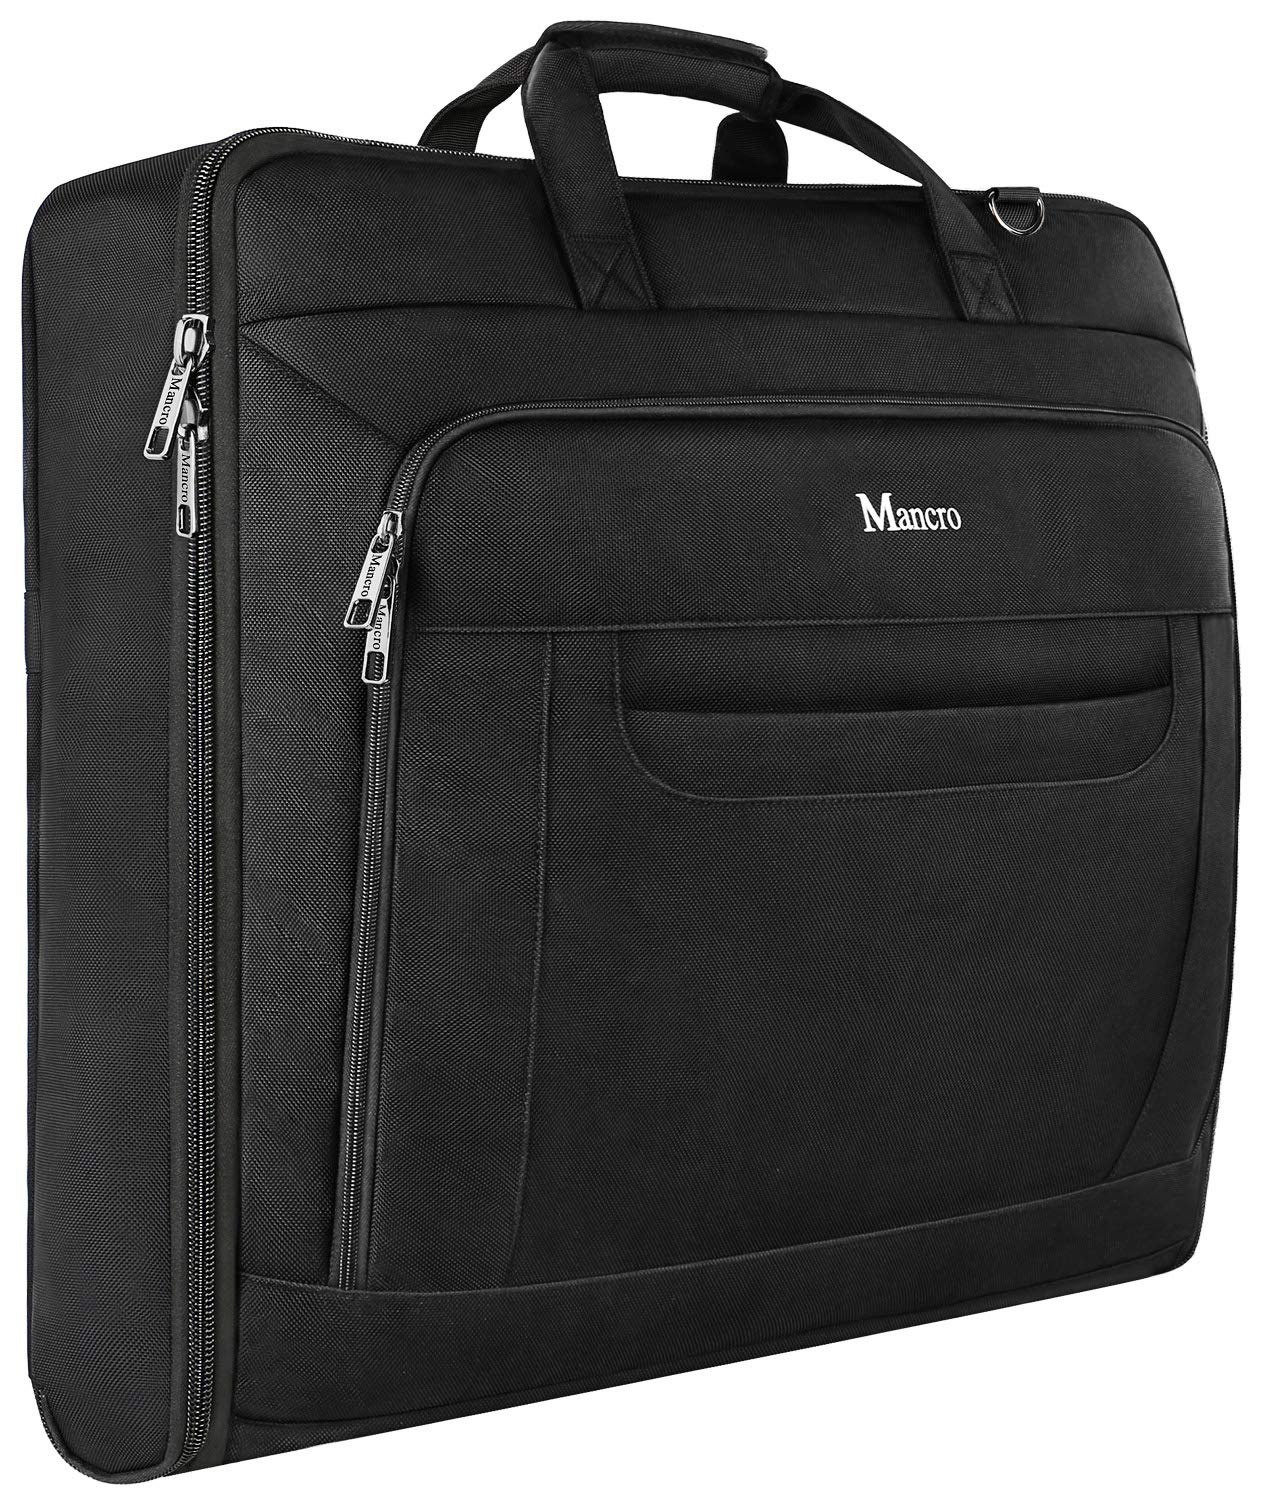 Carry On Garment Bag, Travel Garment Bags for Business Trips With Shoulder Strap, Mancro Waterproof Foldable Luggage Suit Bags for Men Women, 2 in 1 Hanging Suitcase for Dresses,Suits,Coats (Black)